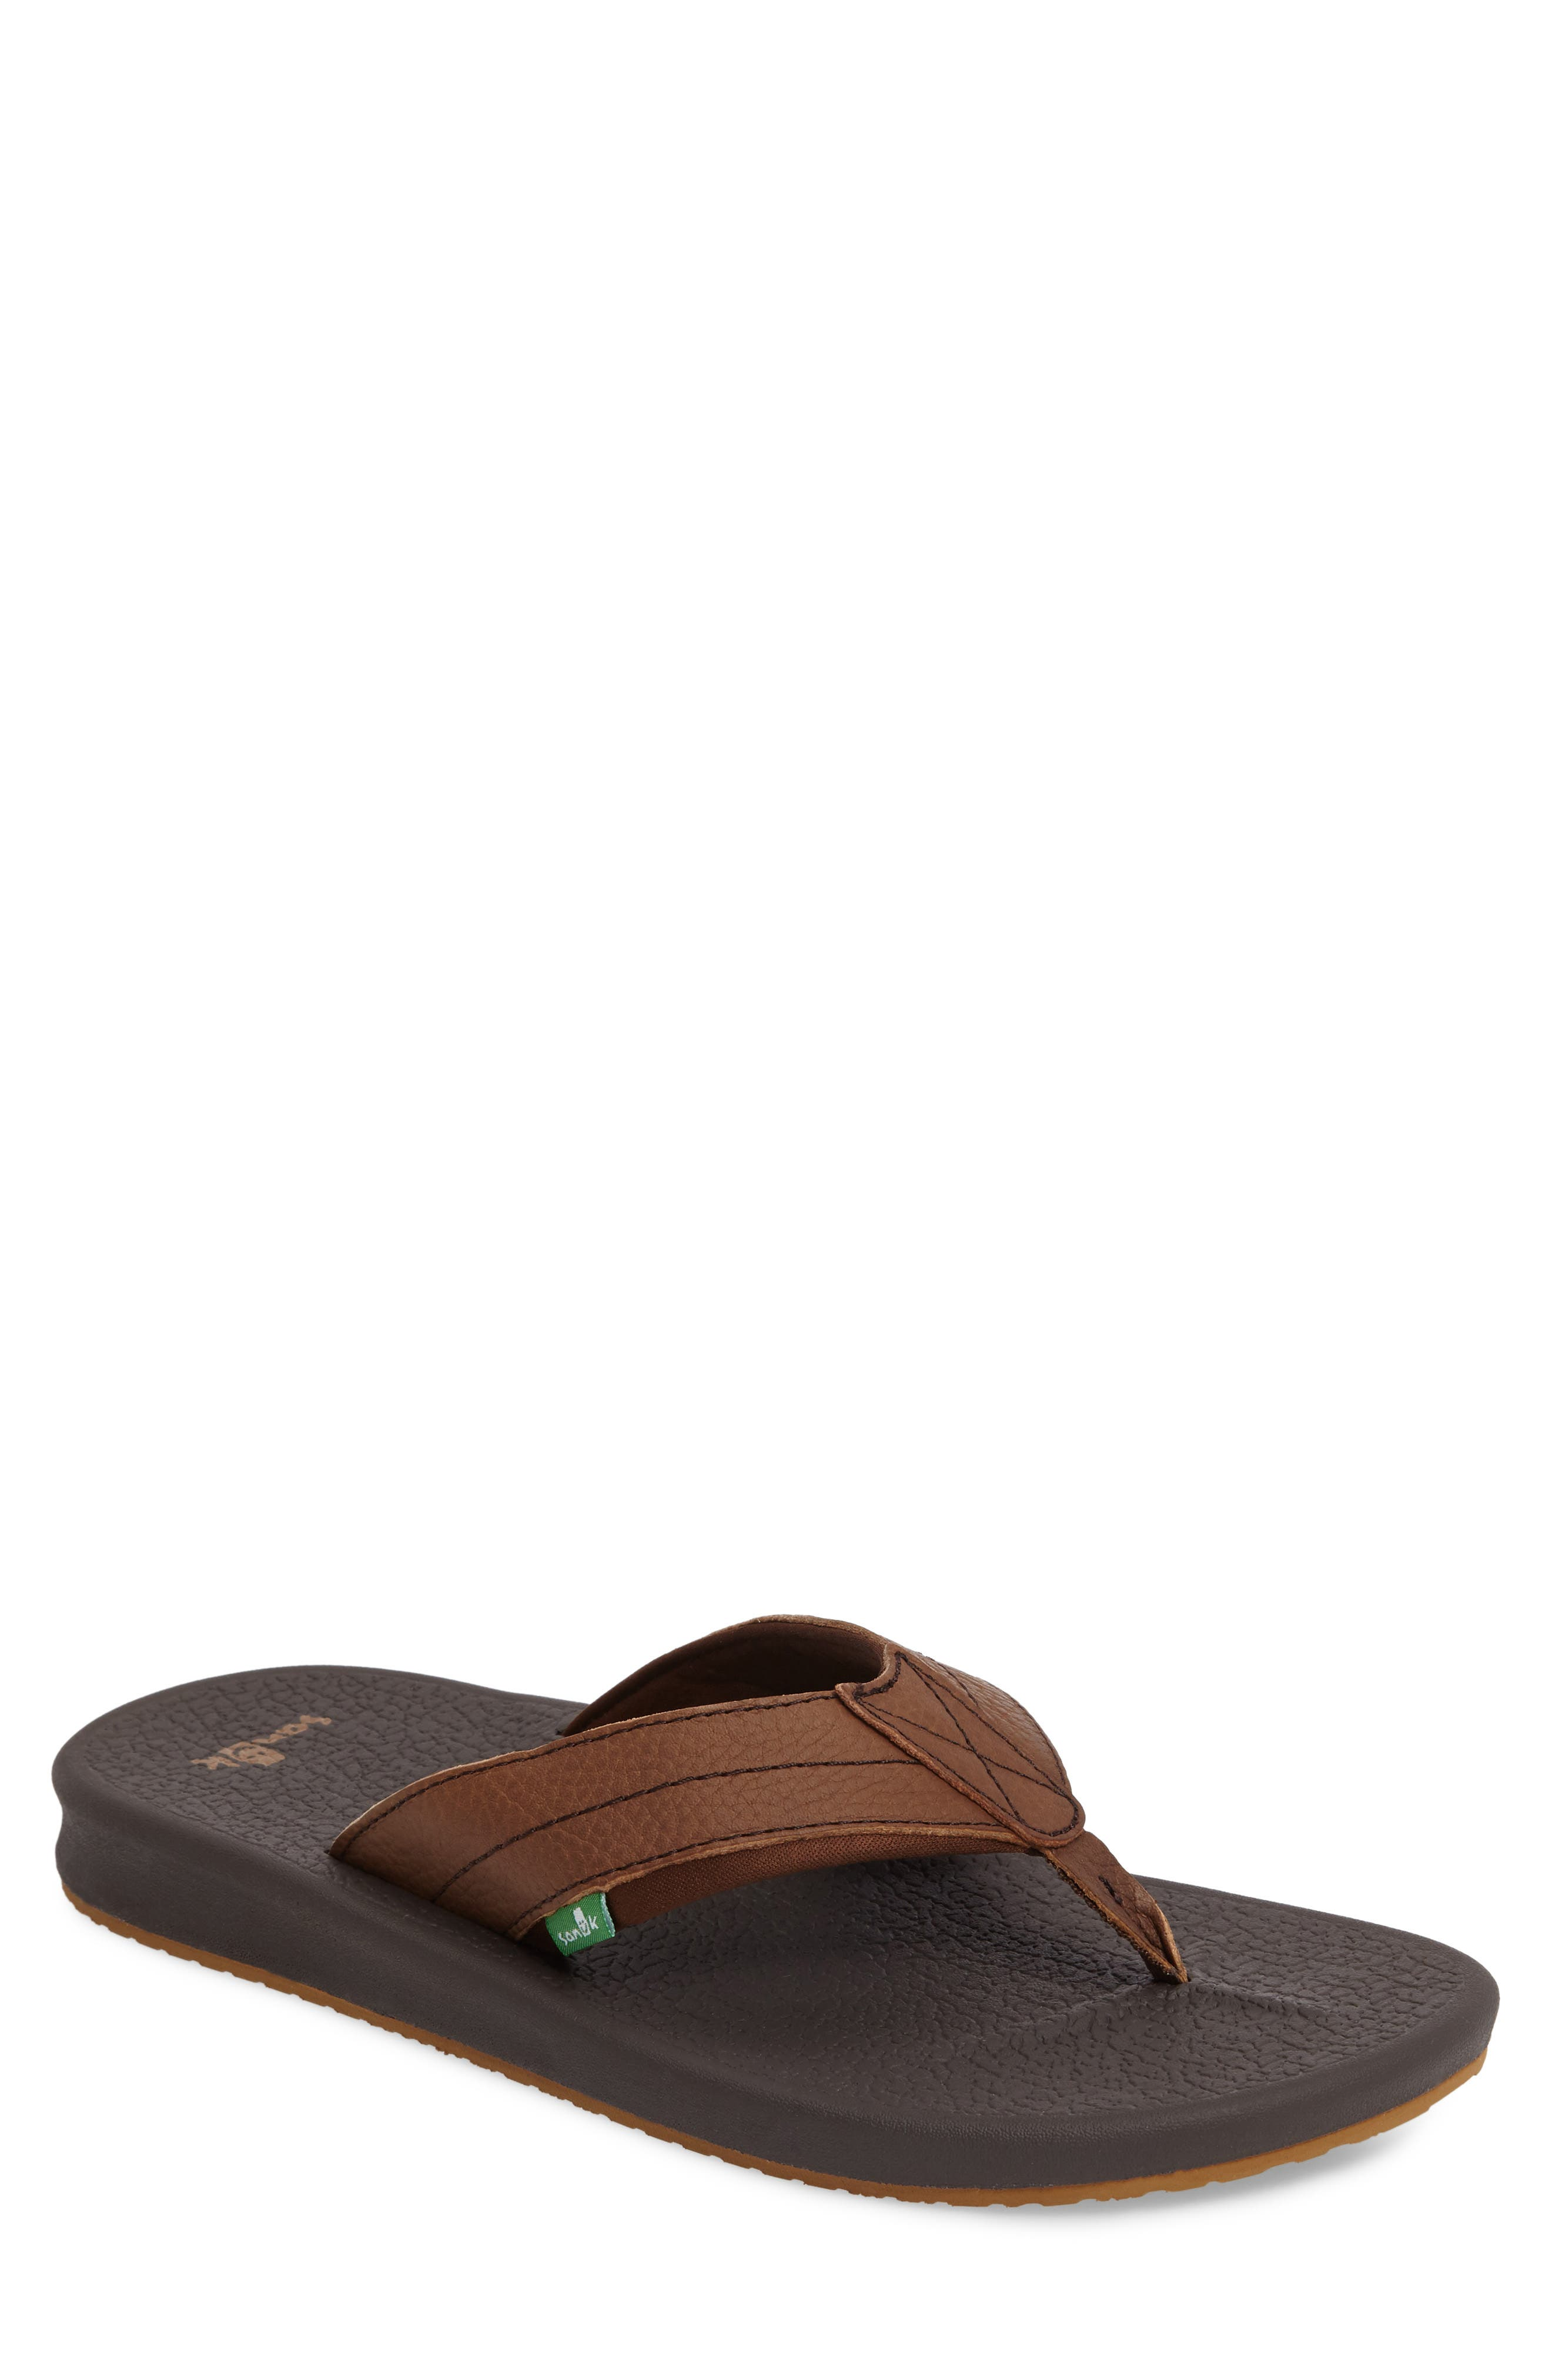 Brumesiter Primo Flip Flop,                         Main,                         color, Brown Leather